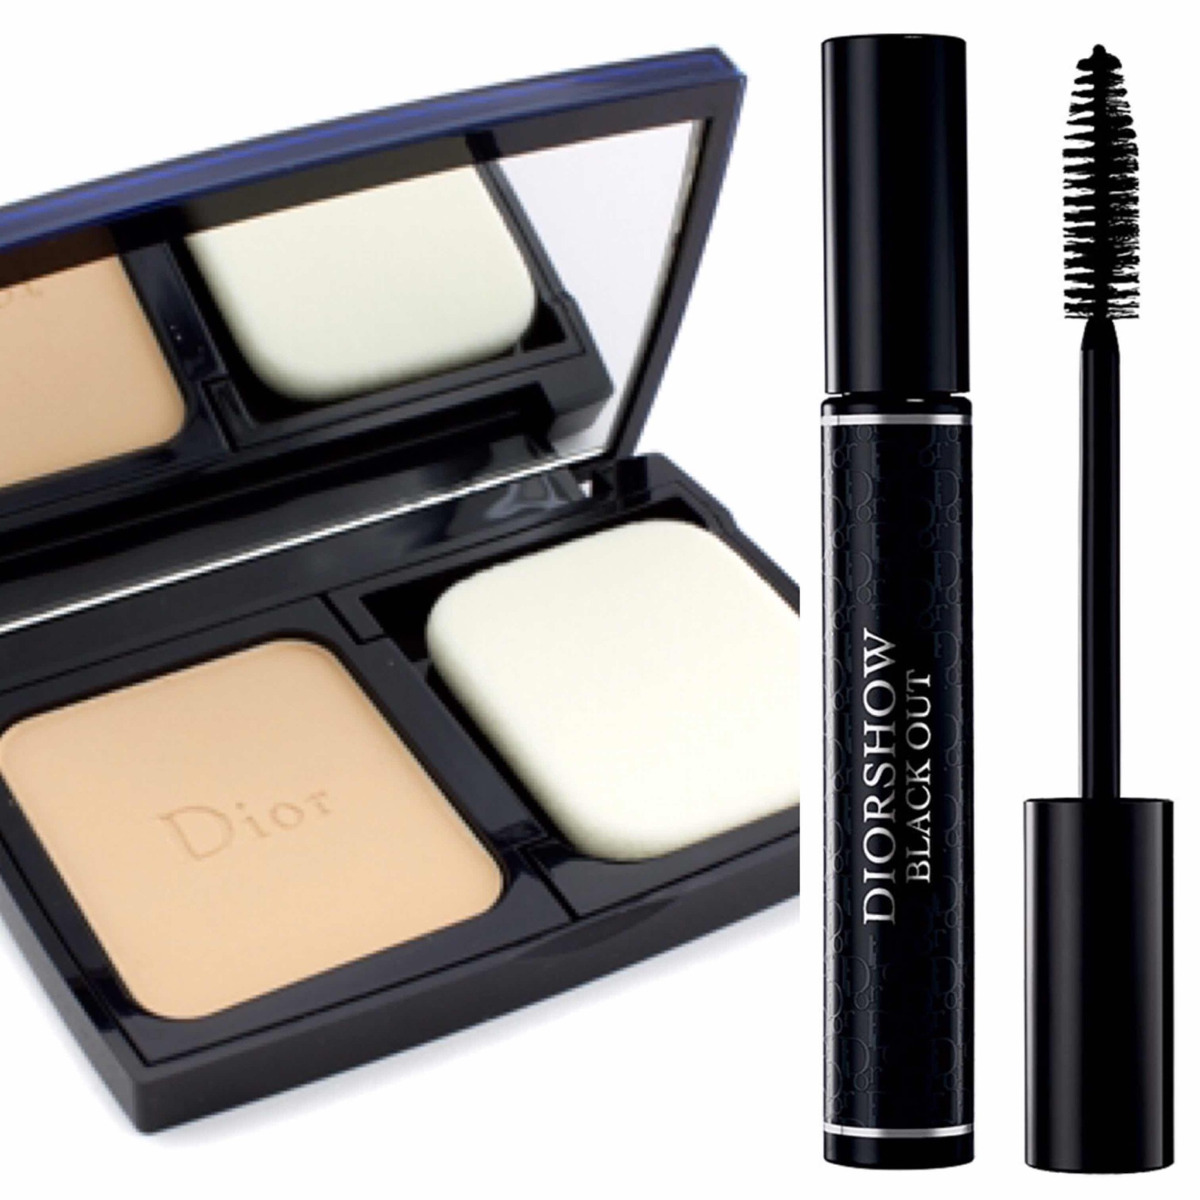 dior blackout mascara